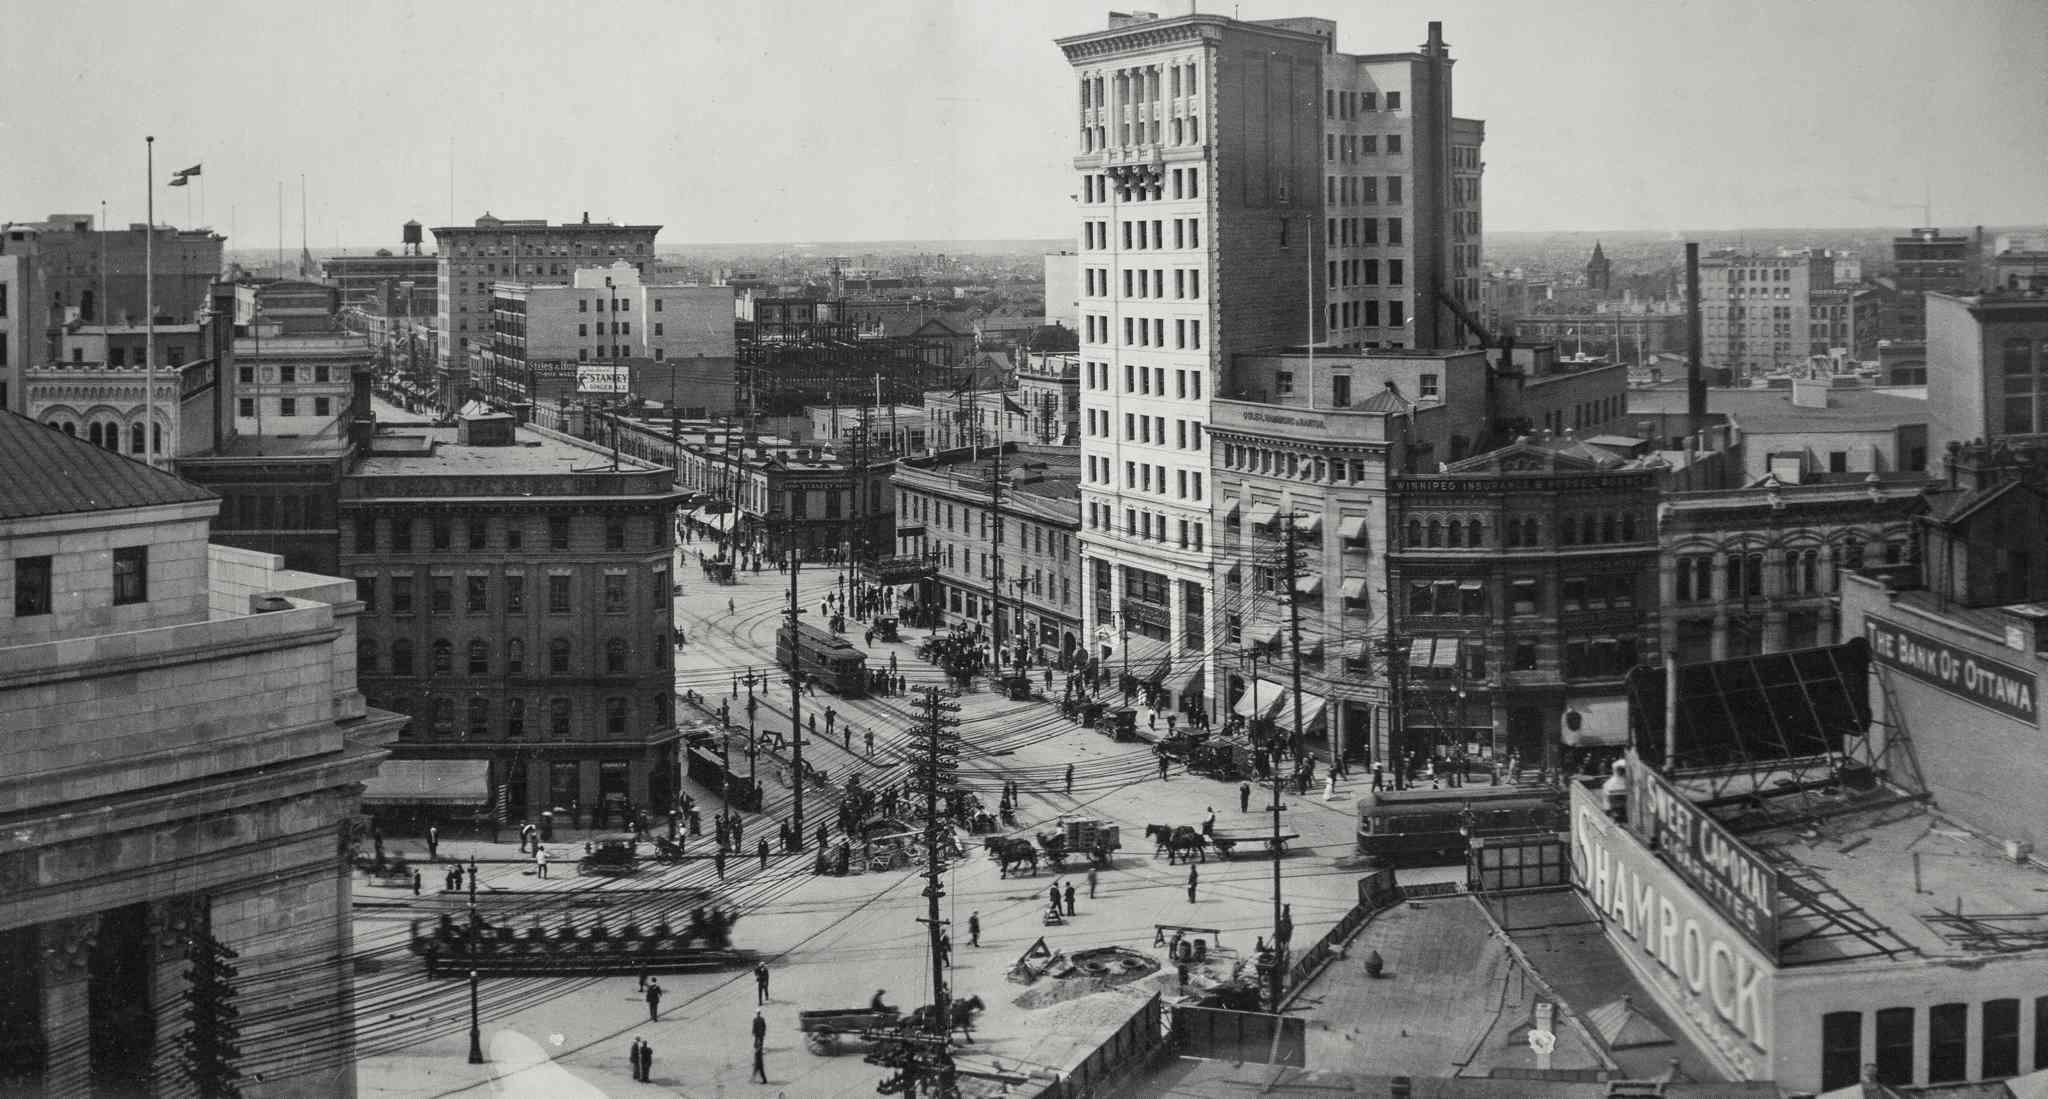 Portage and Main, 1913. (Archives of Manitoba / Rembrandt Studio)